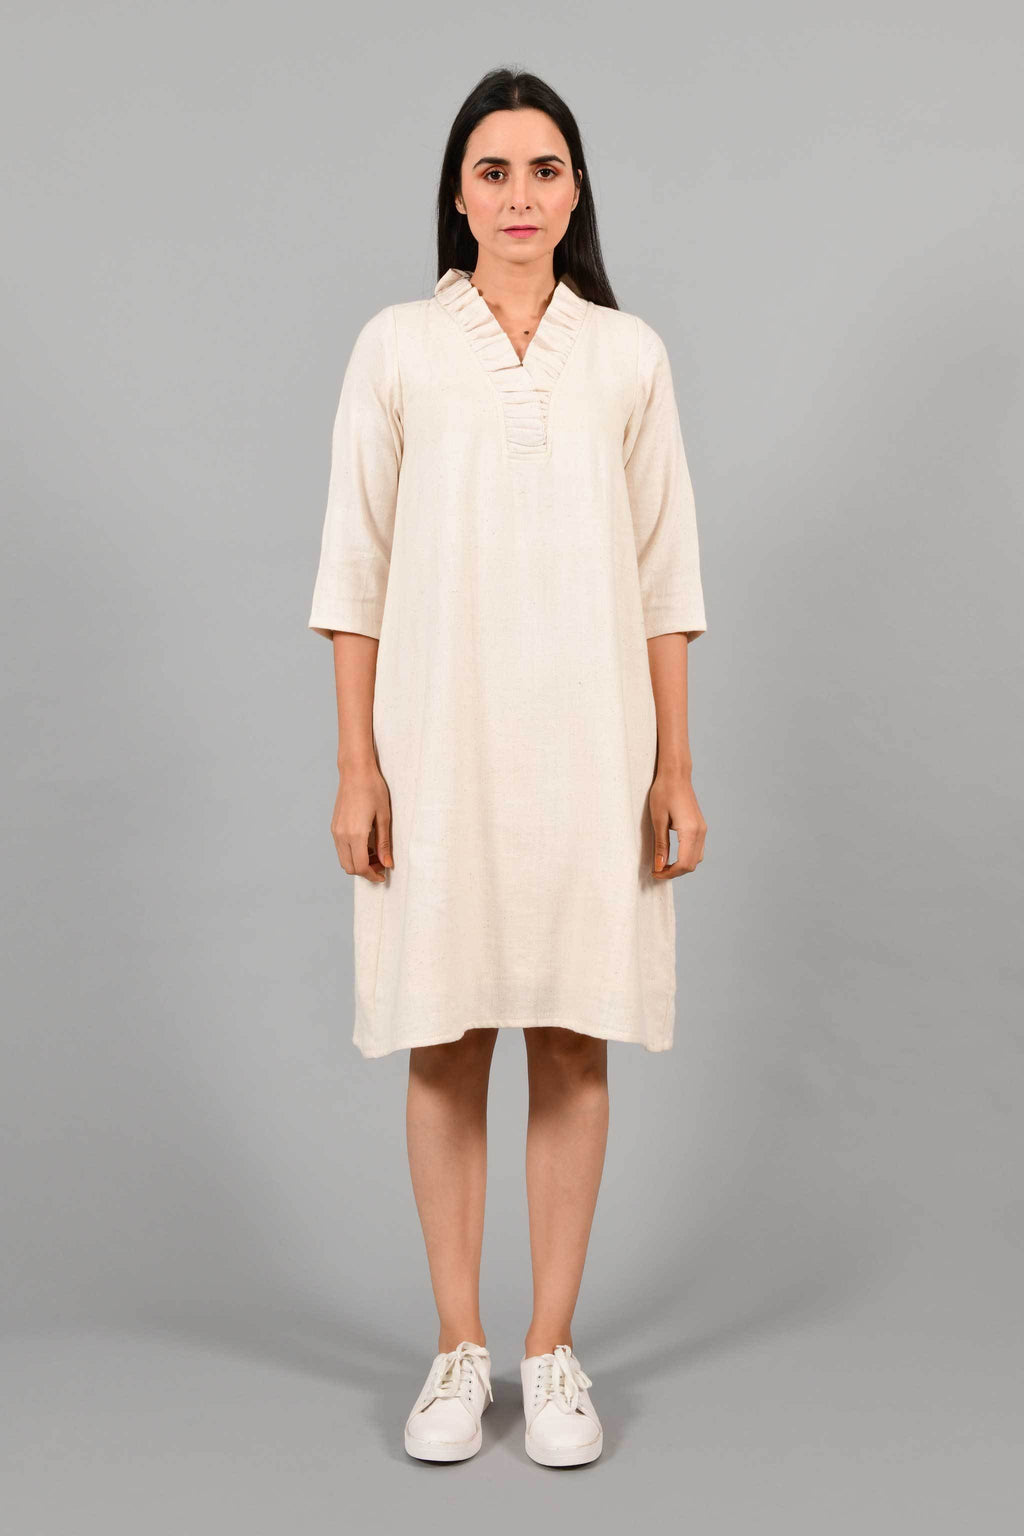 Front pose of an Indian female womenswear fashion model in an off-white Cashmere Cotton Dress with flared neck, made using handspun and handwoven khadi cotton by Cotton Rack.